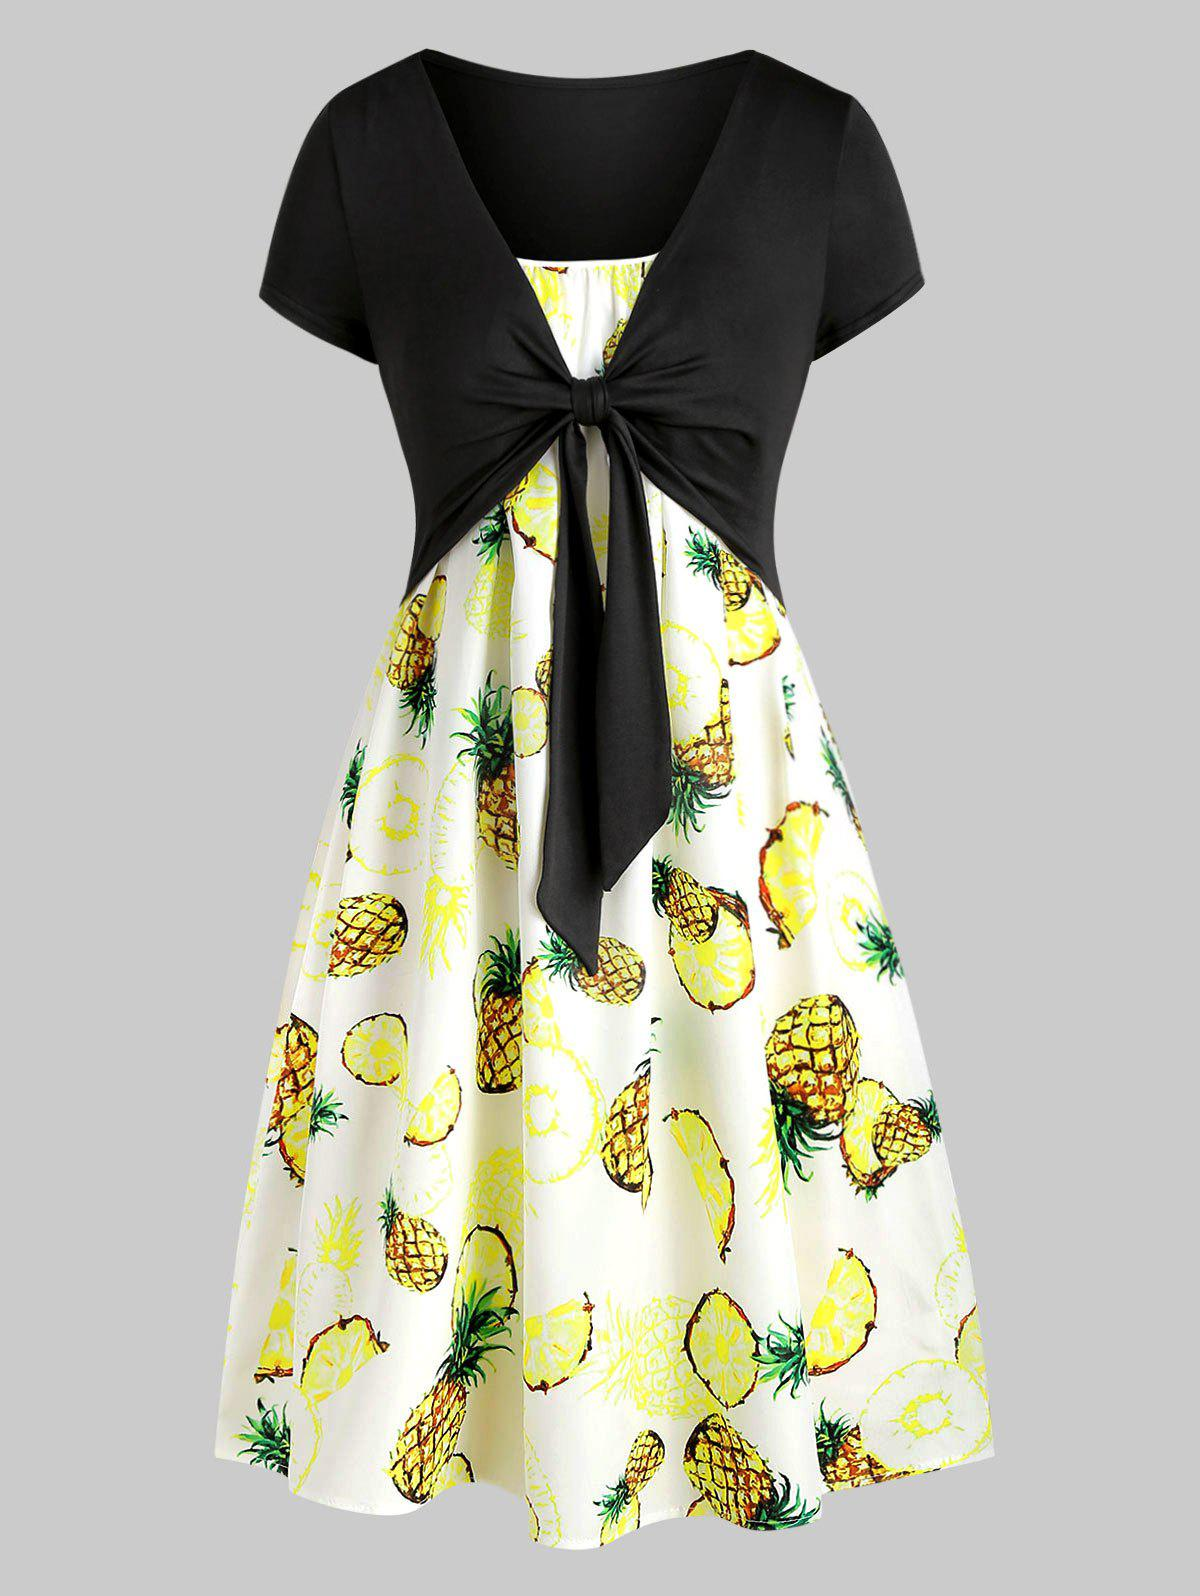 333e728a9c00 27% OFF ] 2019 Cami Pineapple Dress With T-shirt | Rosegal.com